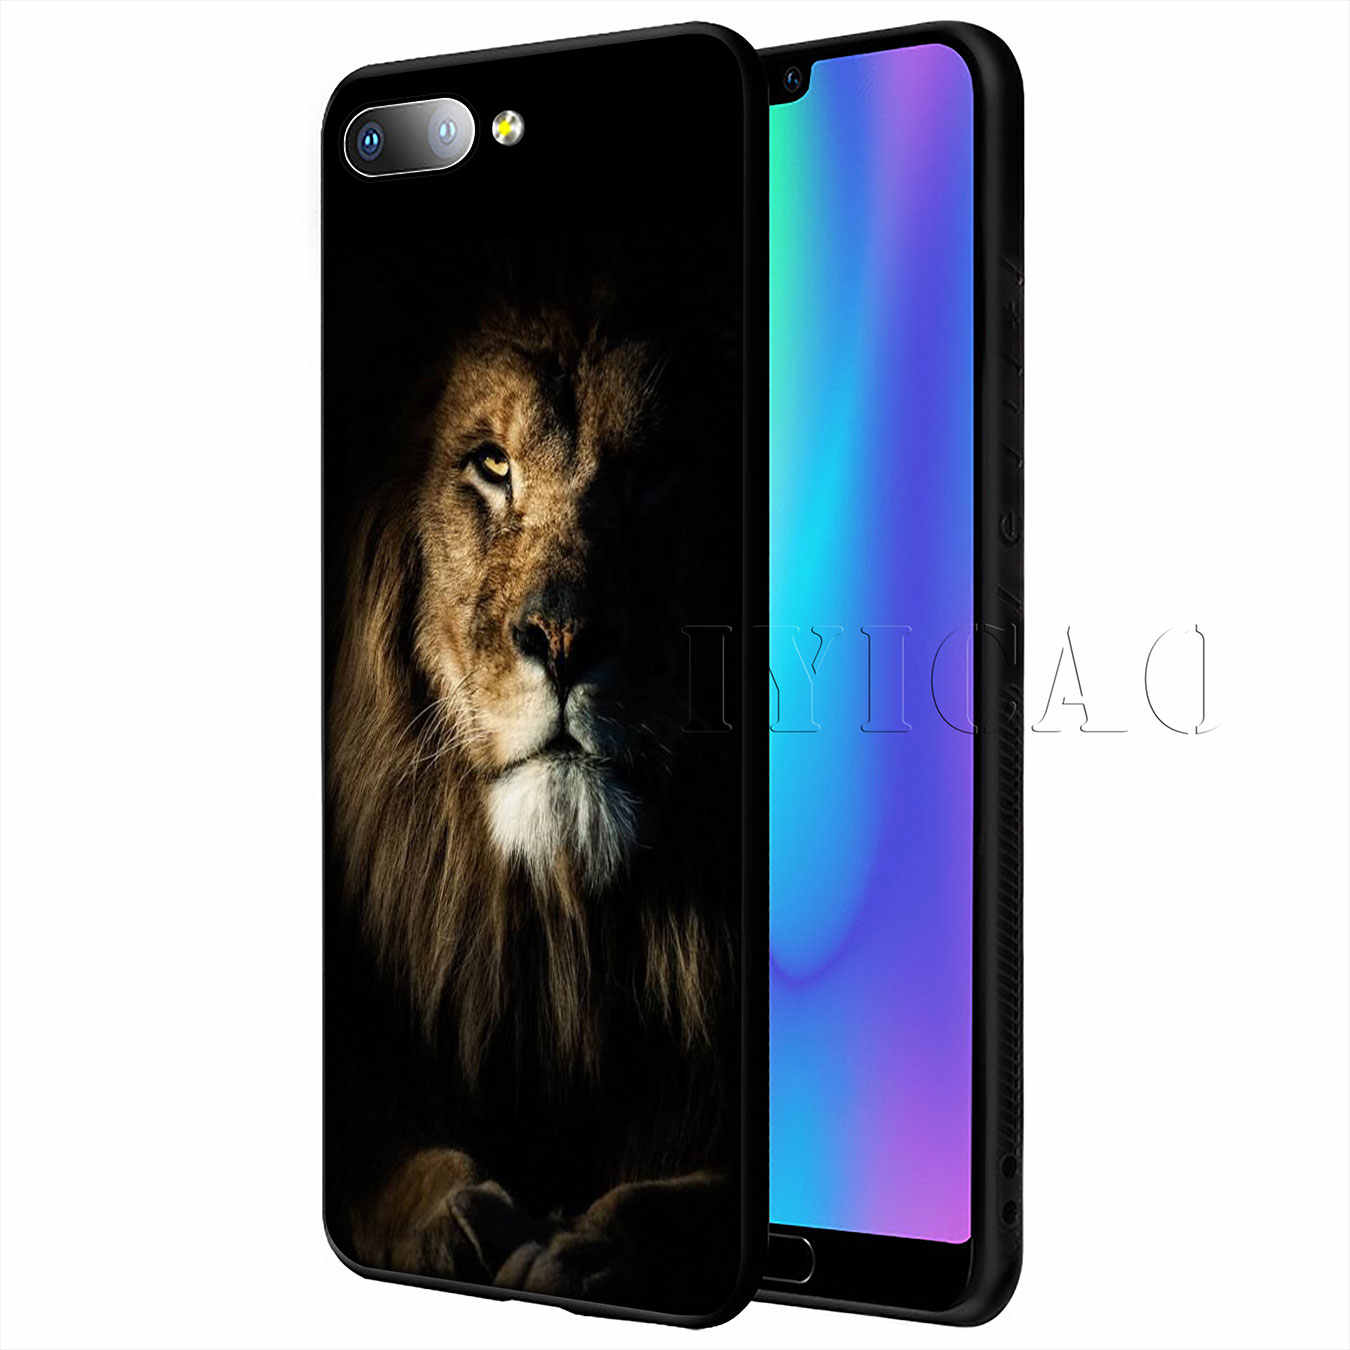 IYICAO bear tiger lion Soft Case for Huawei P20 Pro P10 P8 P9 P30 Lite Mini 2017 P Smart 2019 Cover